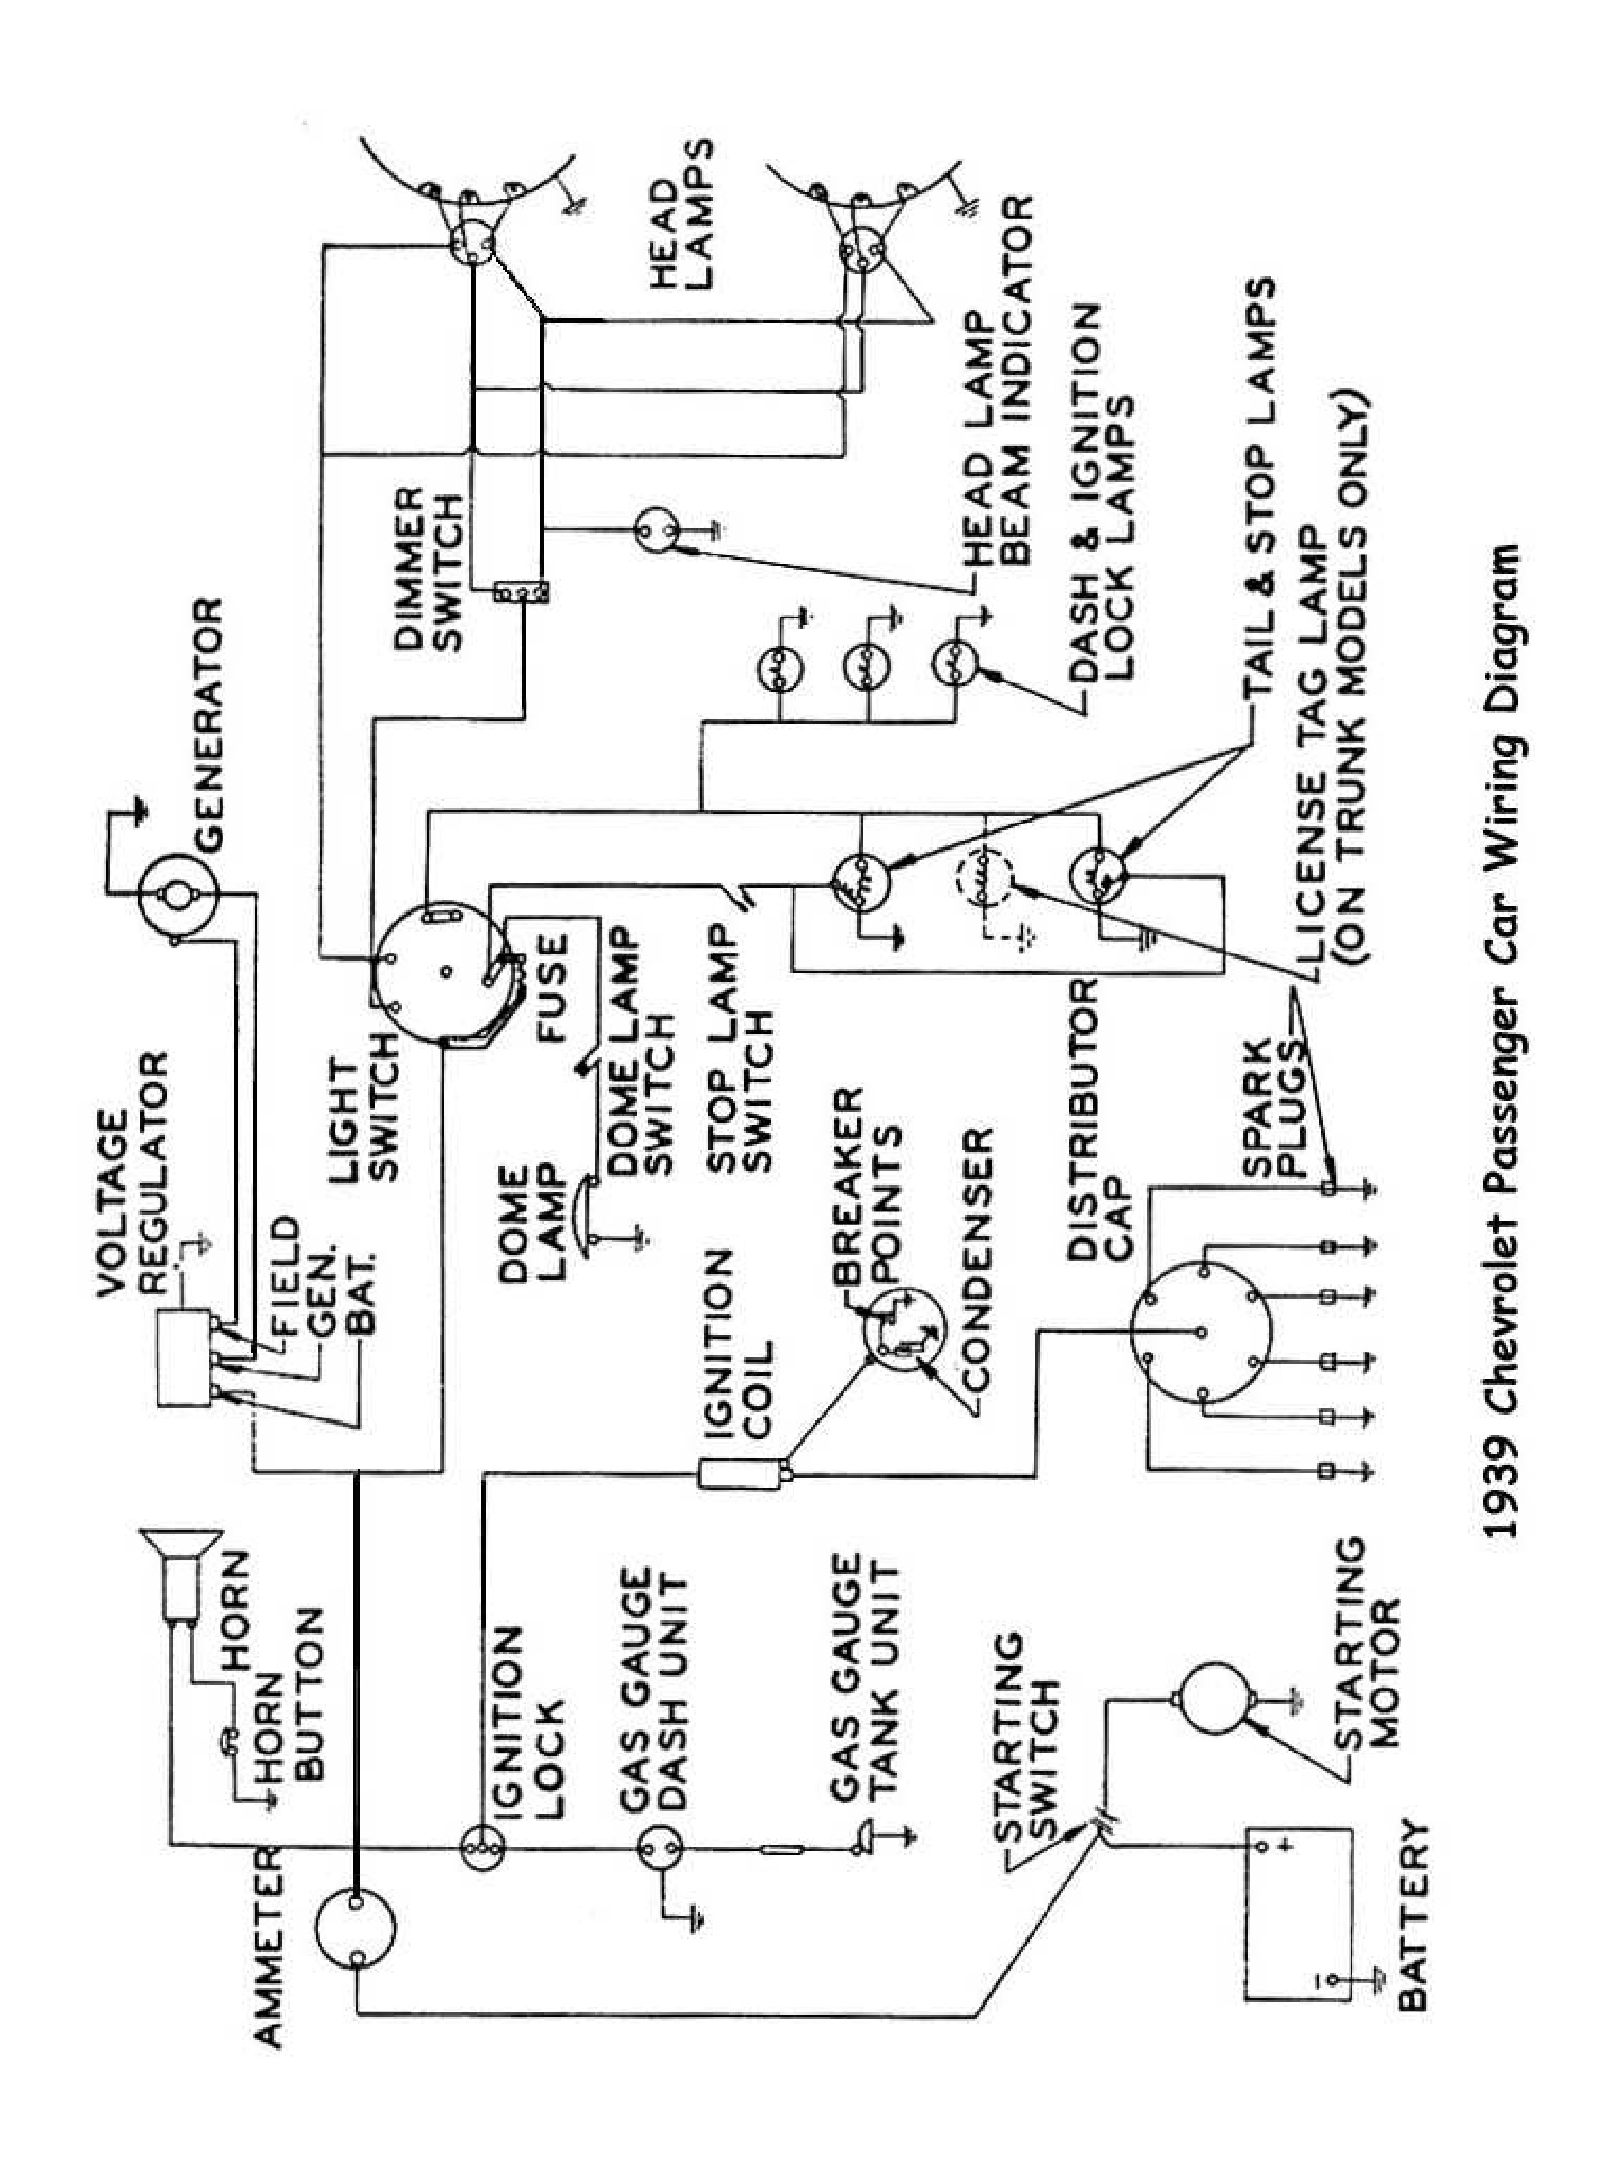 Chevy Silverado Drawing At Free For Personal Use 1986 K10 Wiring Diagram 1600x2164 Diagrams